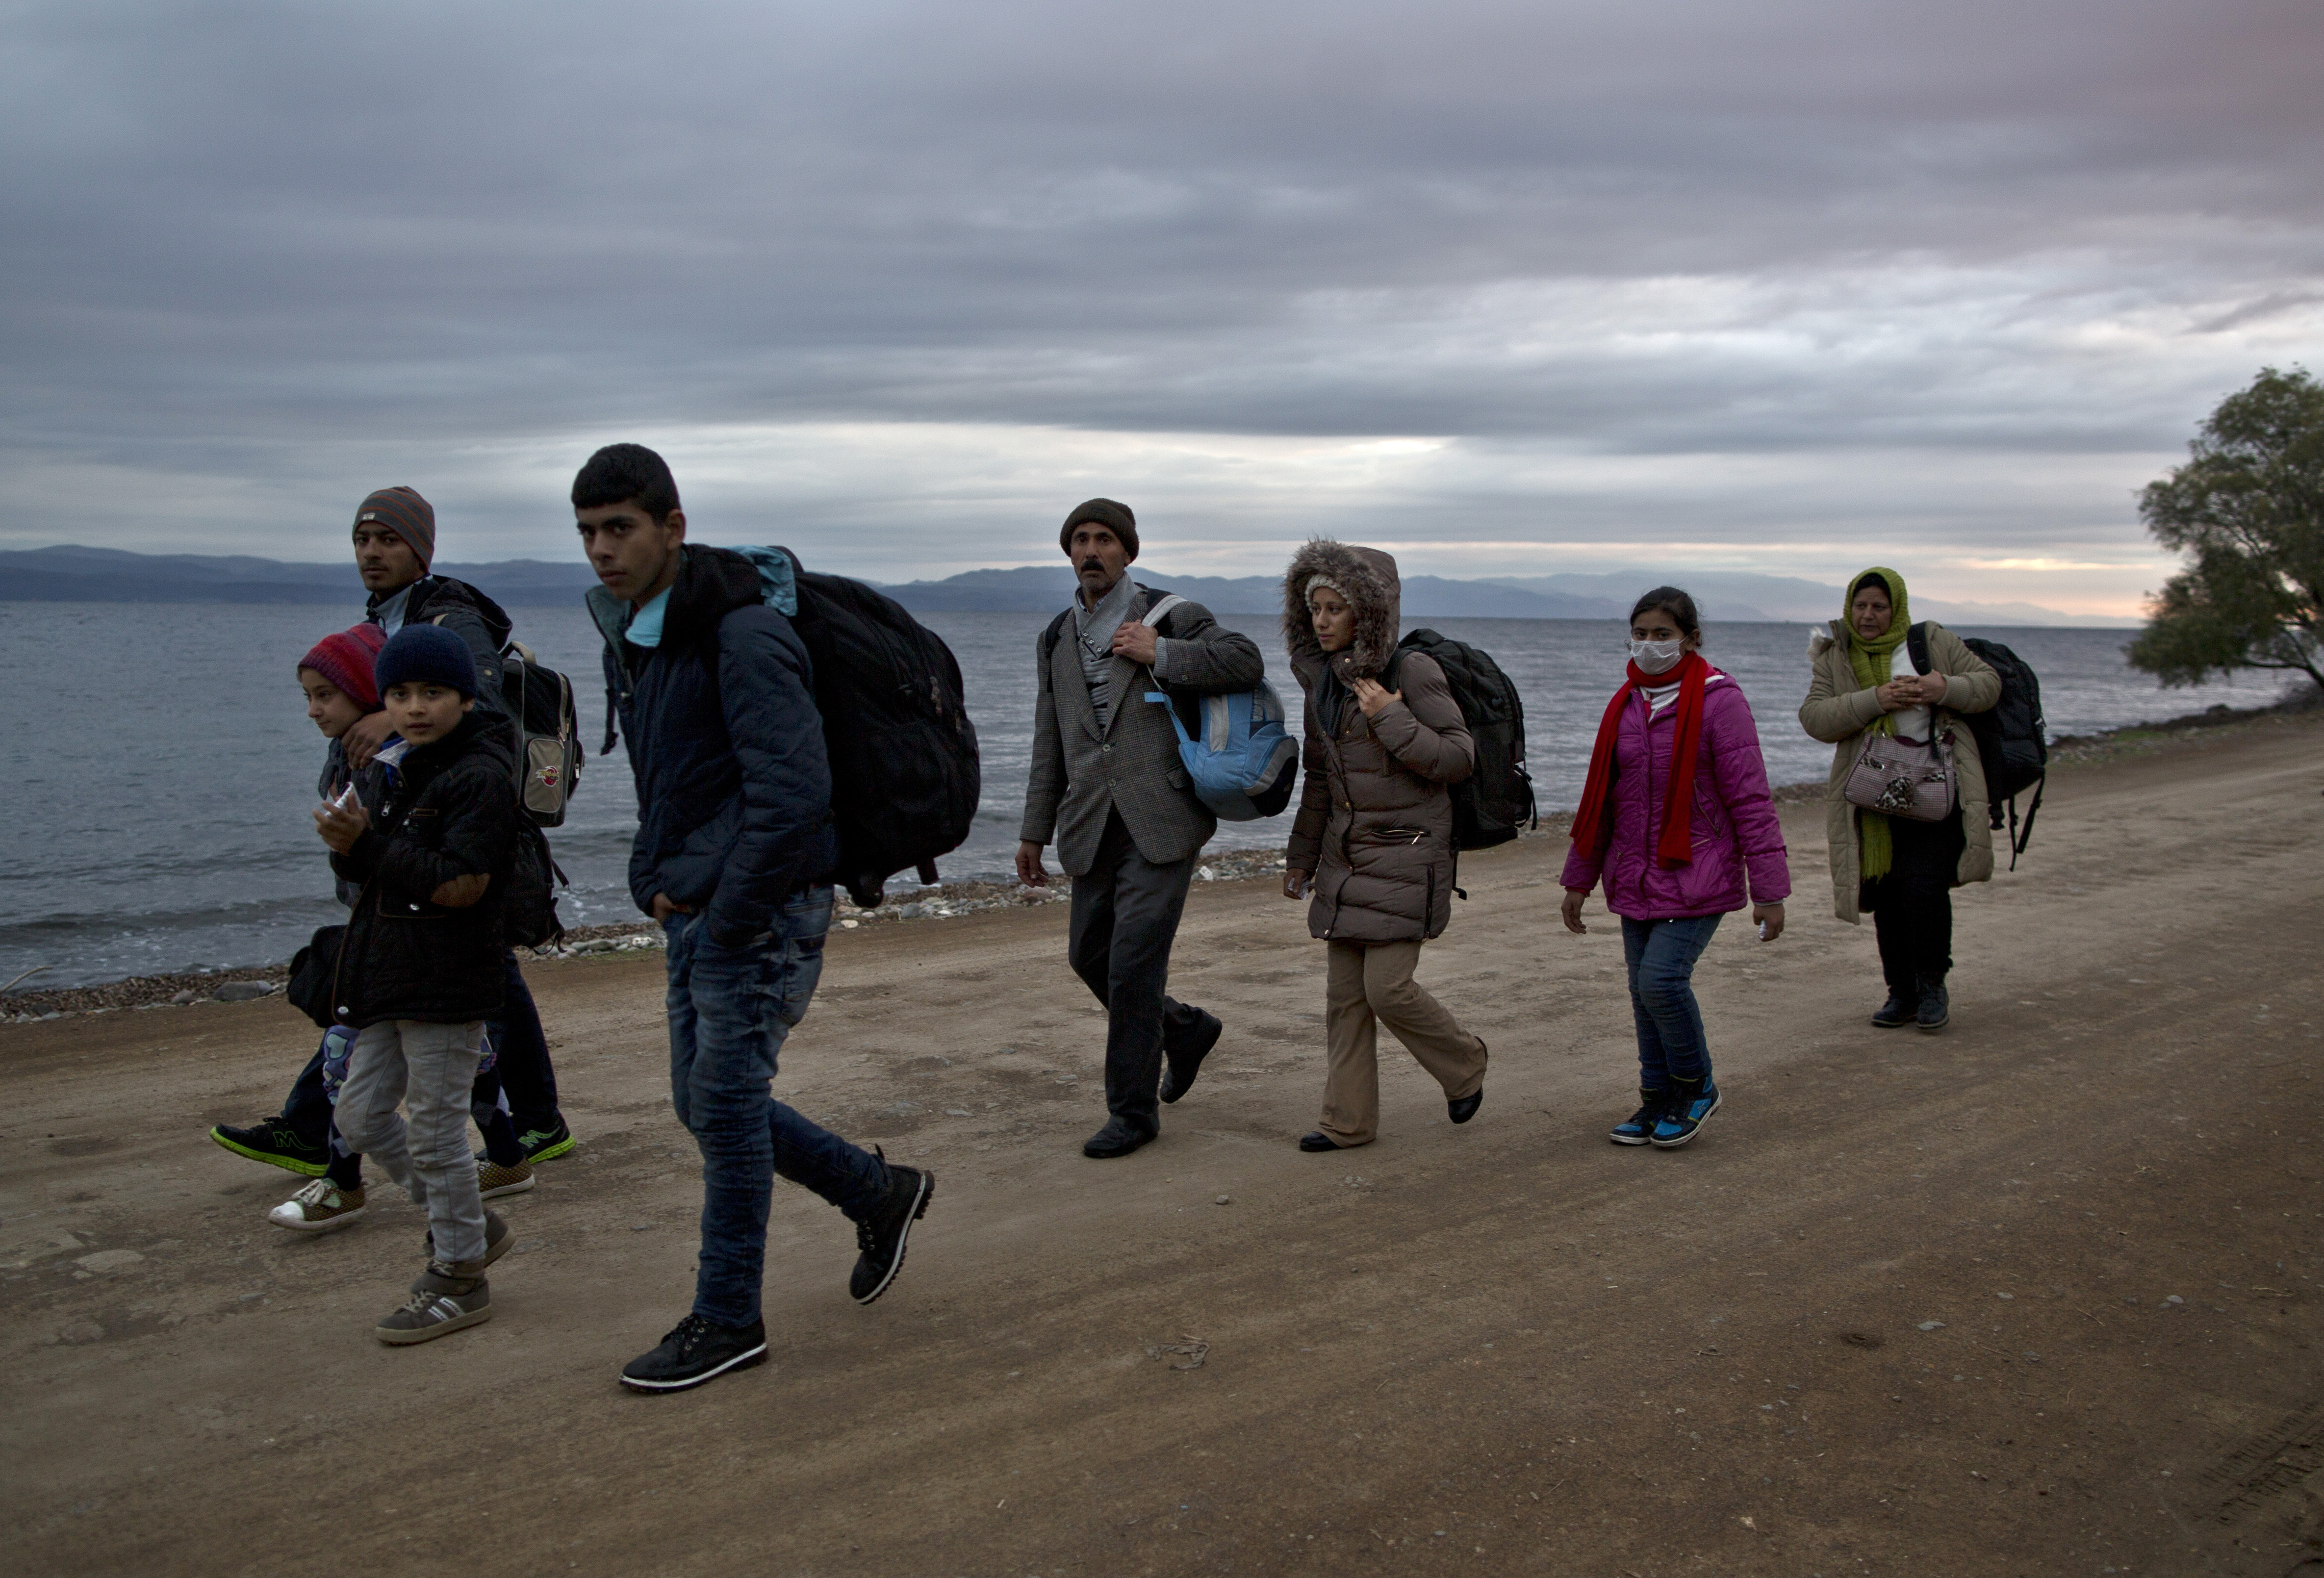 In this Thursday, Dec. 3, 2015 photo, Yazidi refugee Samir Qasu, 45, from Sinjar, Iraq, and his wife Bessi, 42, their two daughters Delphine, 18, Dunia 13, and their two sons Dilshad, 17, and Dildar, 10, walk toward a gathering point to board a bus to a registration center, after arriving on a vessel from the Turkish coast to the northeastern Greek island of Lesbos. Photo: AP